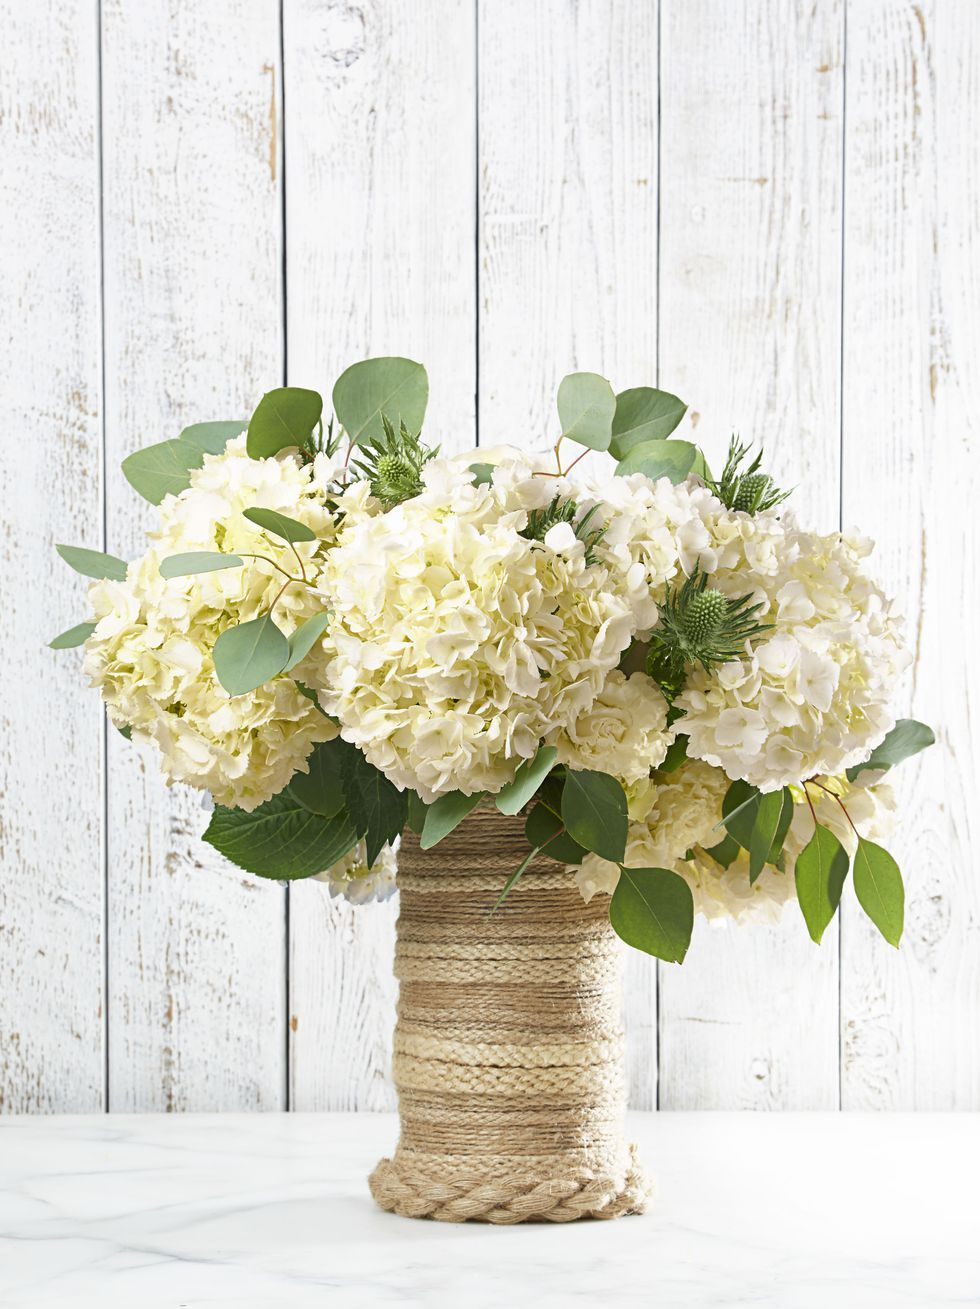 Easter Flowers Rope on Glass Vase with White Flowers & 23 Best Easter Flowers and Centerpieces - Floral Arrangements for ...